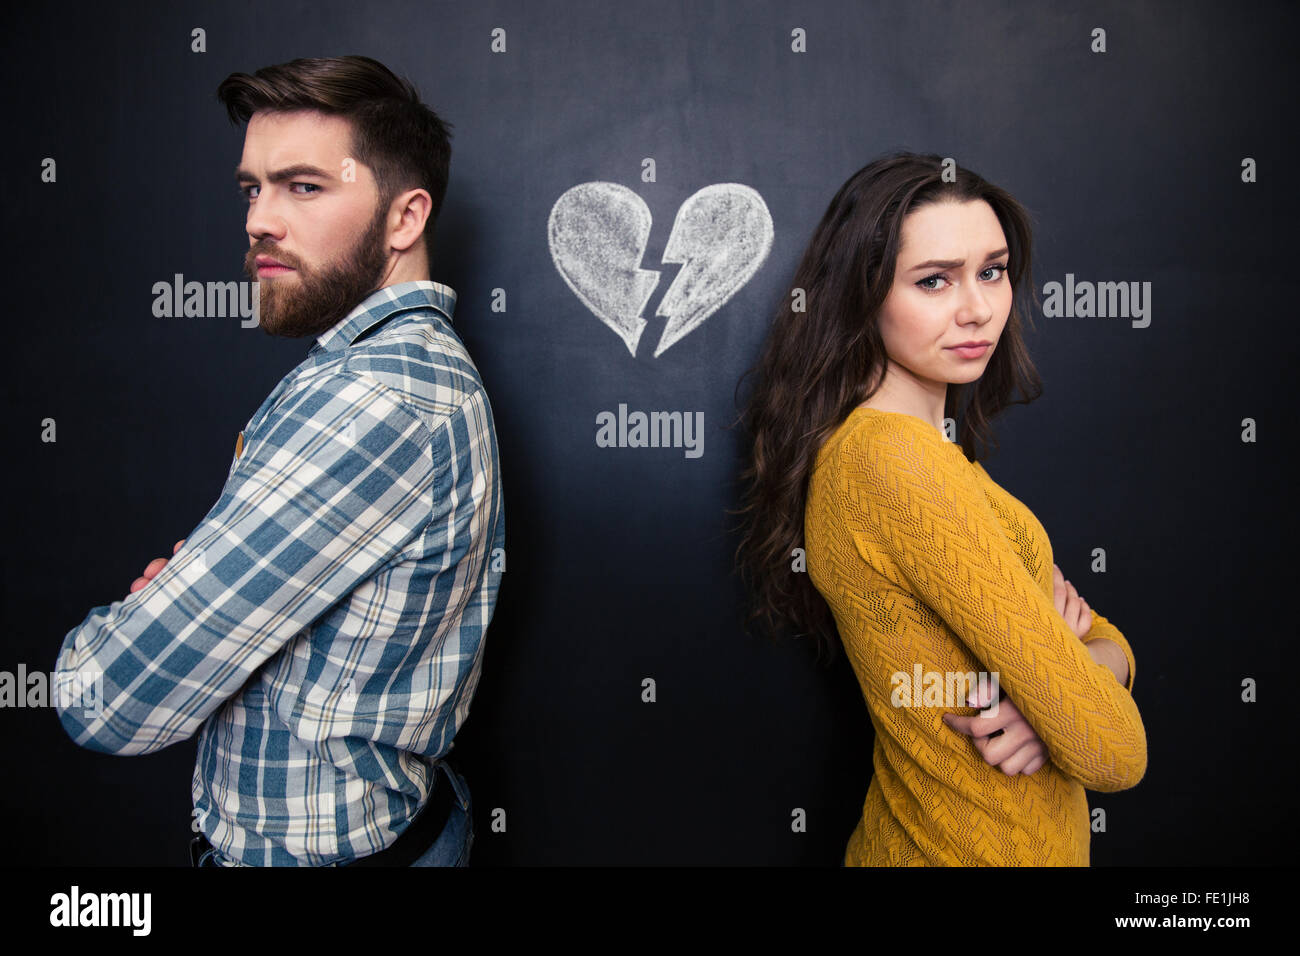 Unhappy young couple standing with arms crossed over background of chalkboard with drawn broken heart - Stock Image